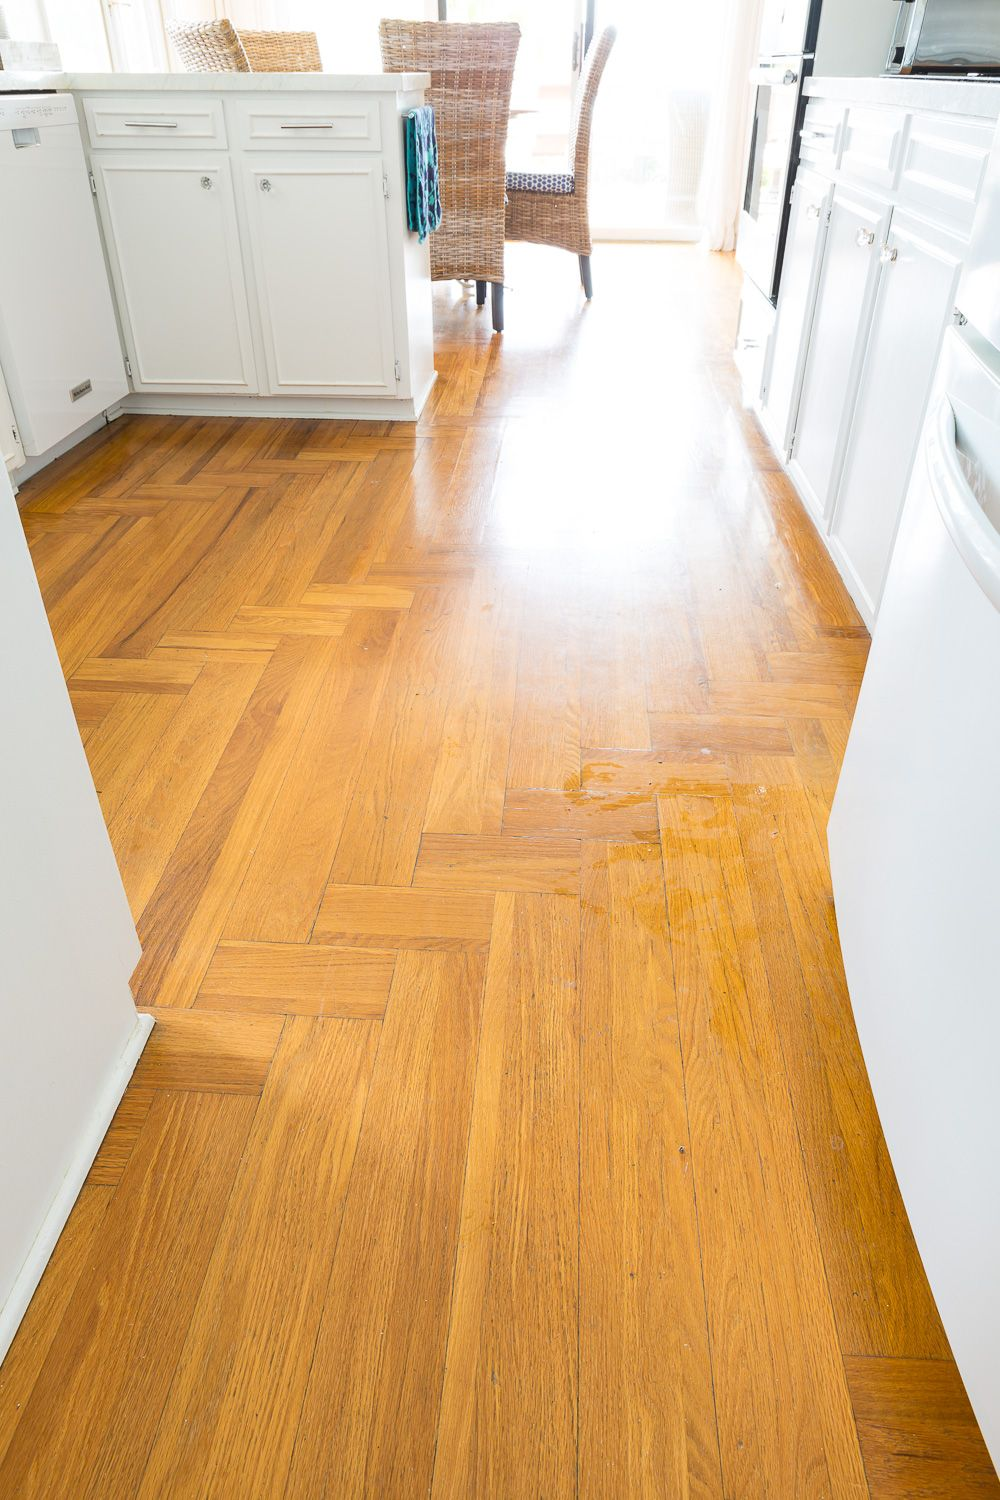 Choosing a Wood Floor Stain Color for My Kitchen & Living ...